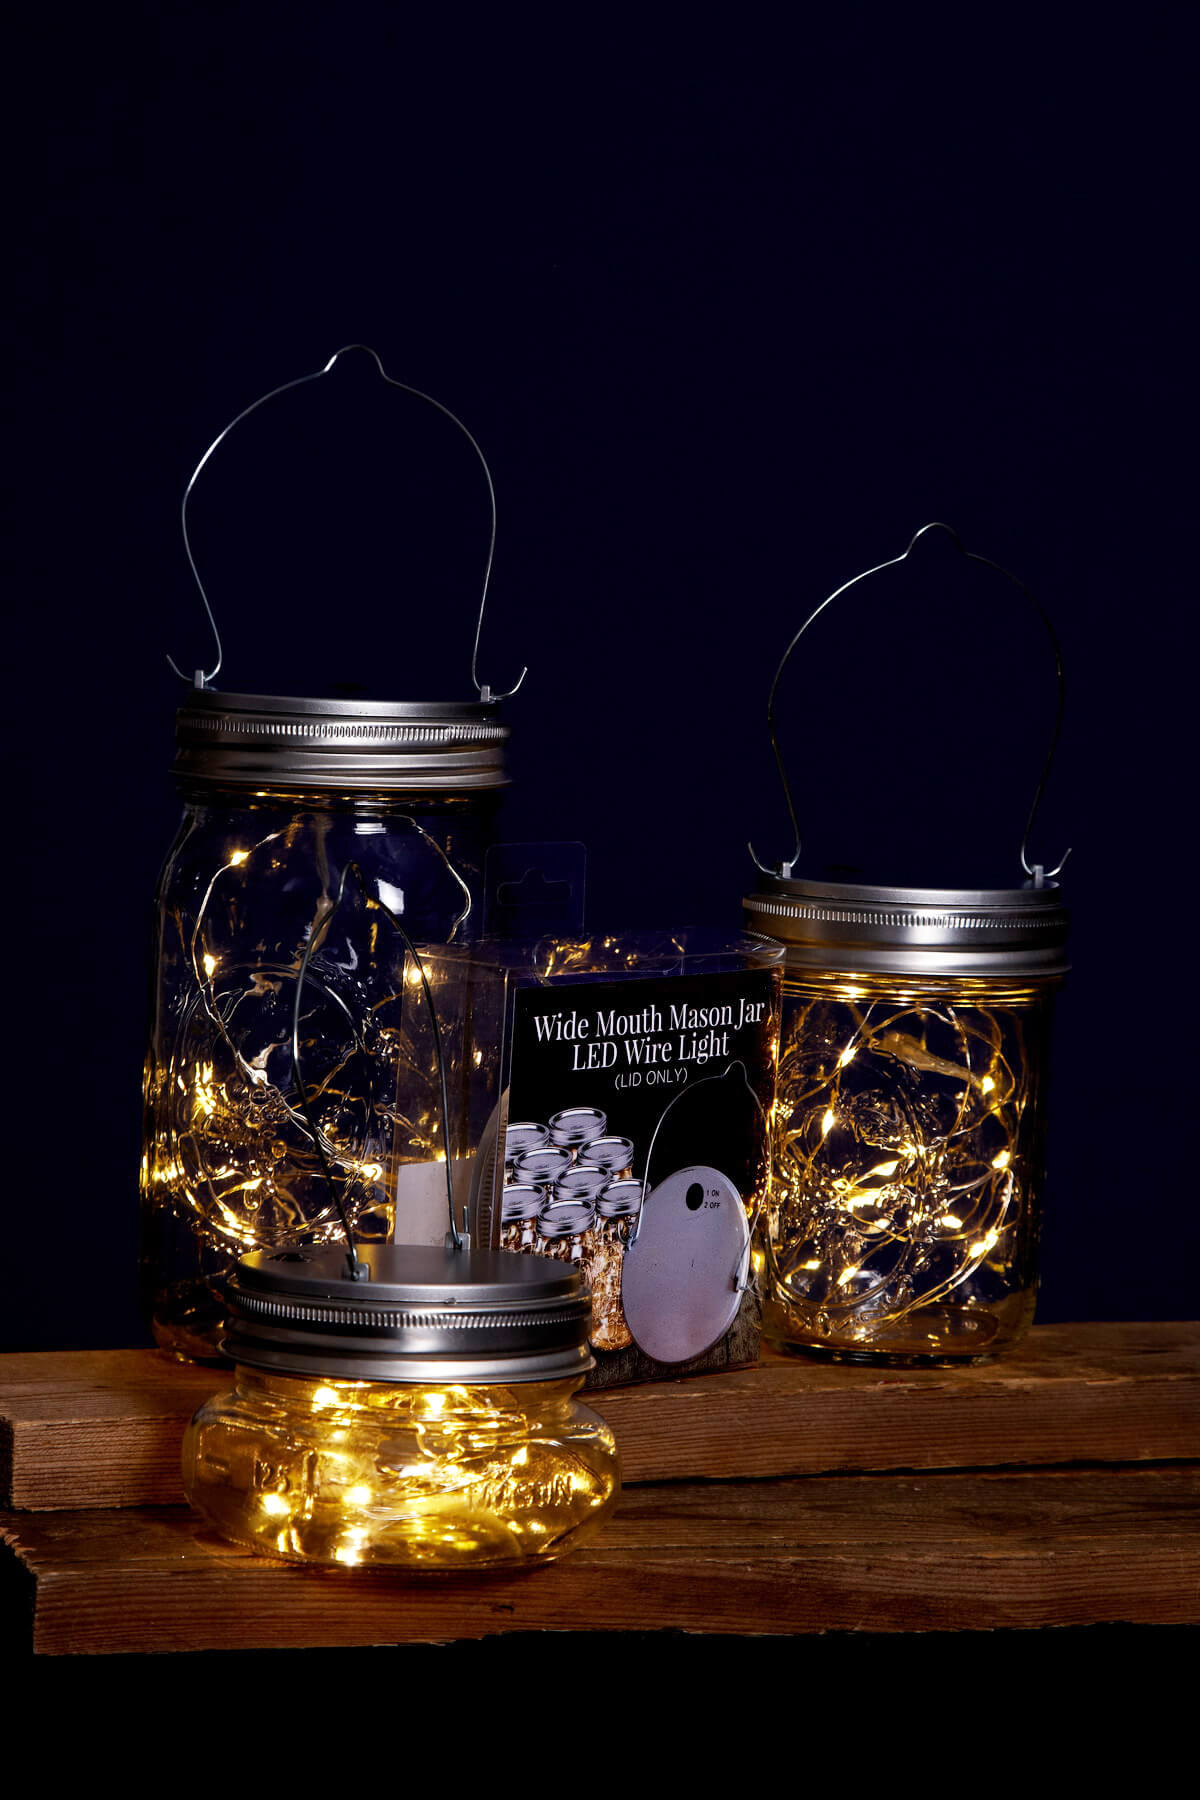 Mason Jar Lights Fairy Lights Battery Op Warm White Fits